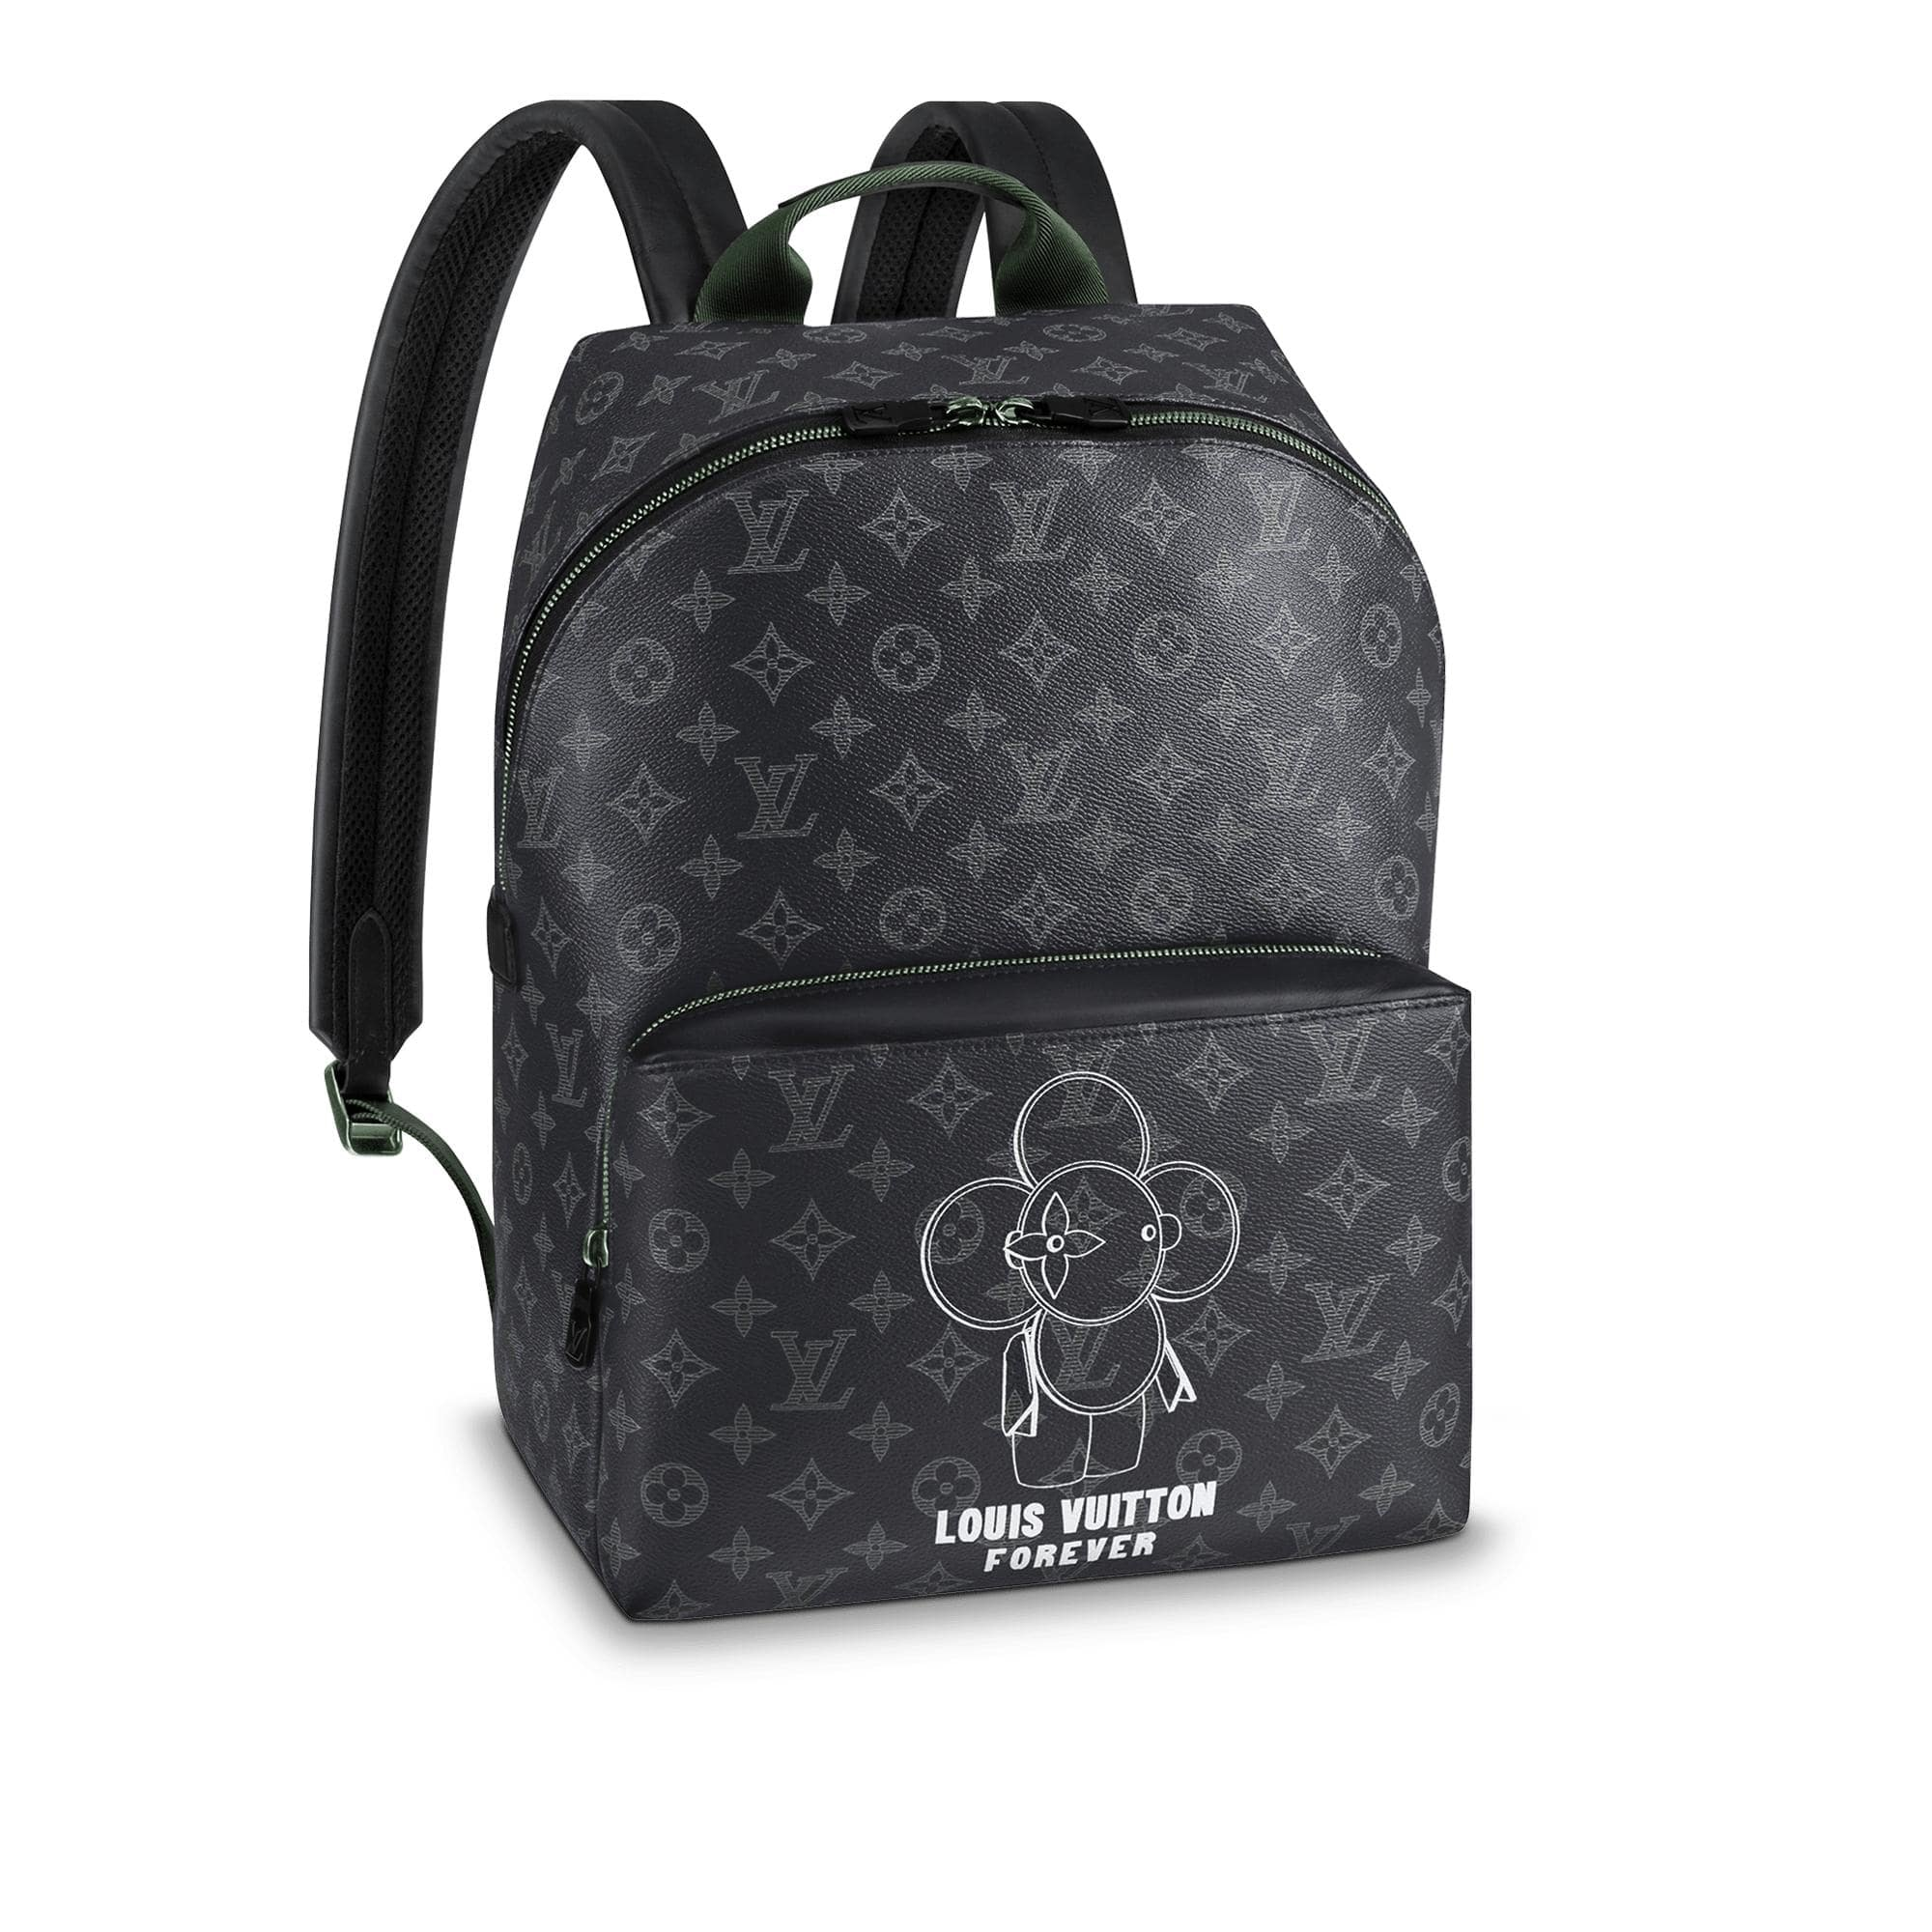 Louis Vuitton Apollo Backpack Monogram Vivienne Eclipse Black